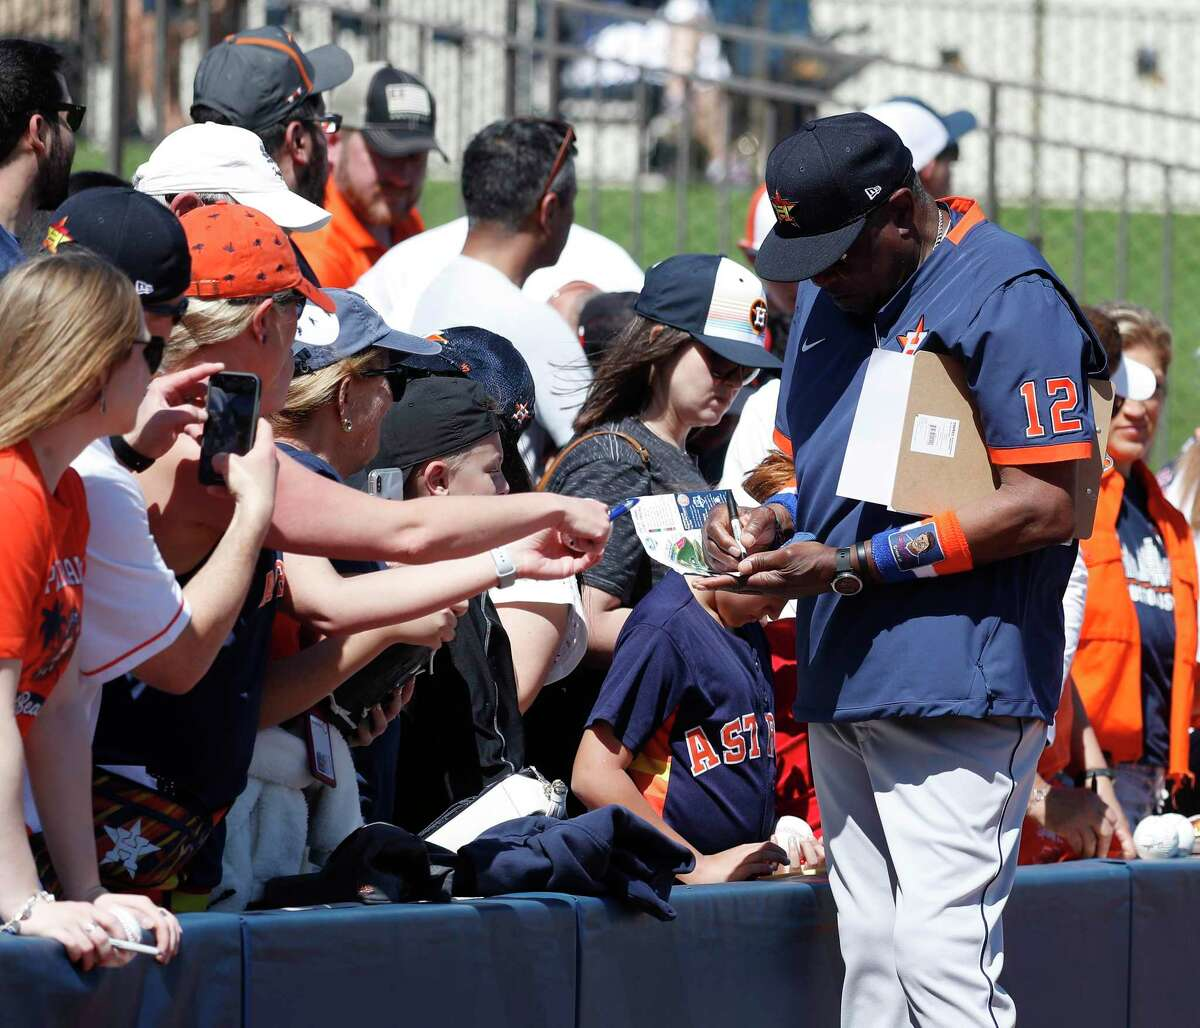 The Astros have sent out ticket pre-sales for Grapefruit League games this spring.